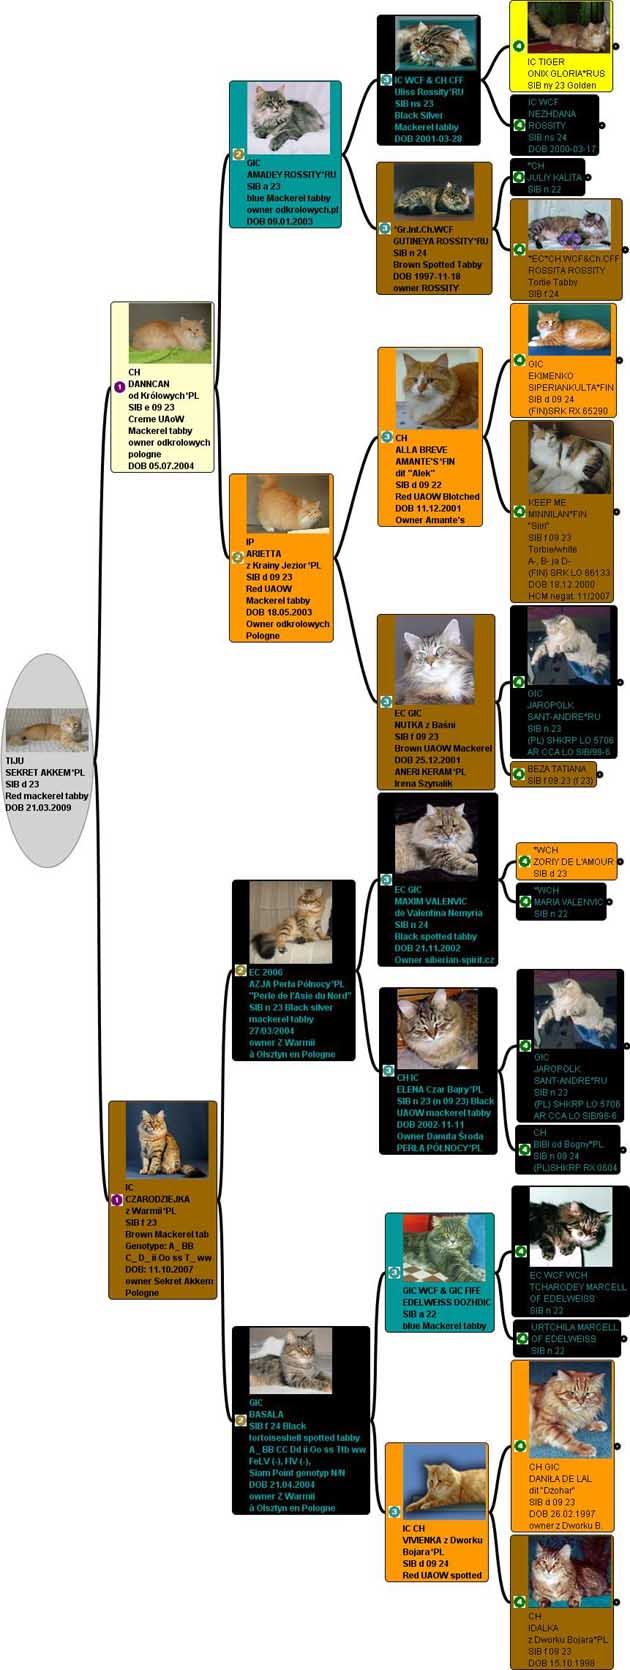 Pedigree images with pictures of almost every cat. The photos were selected to adulthood.